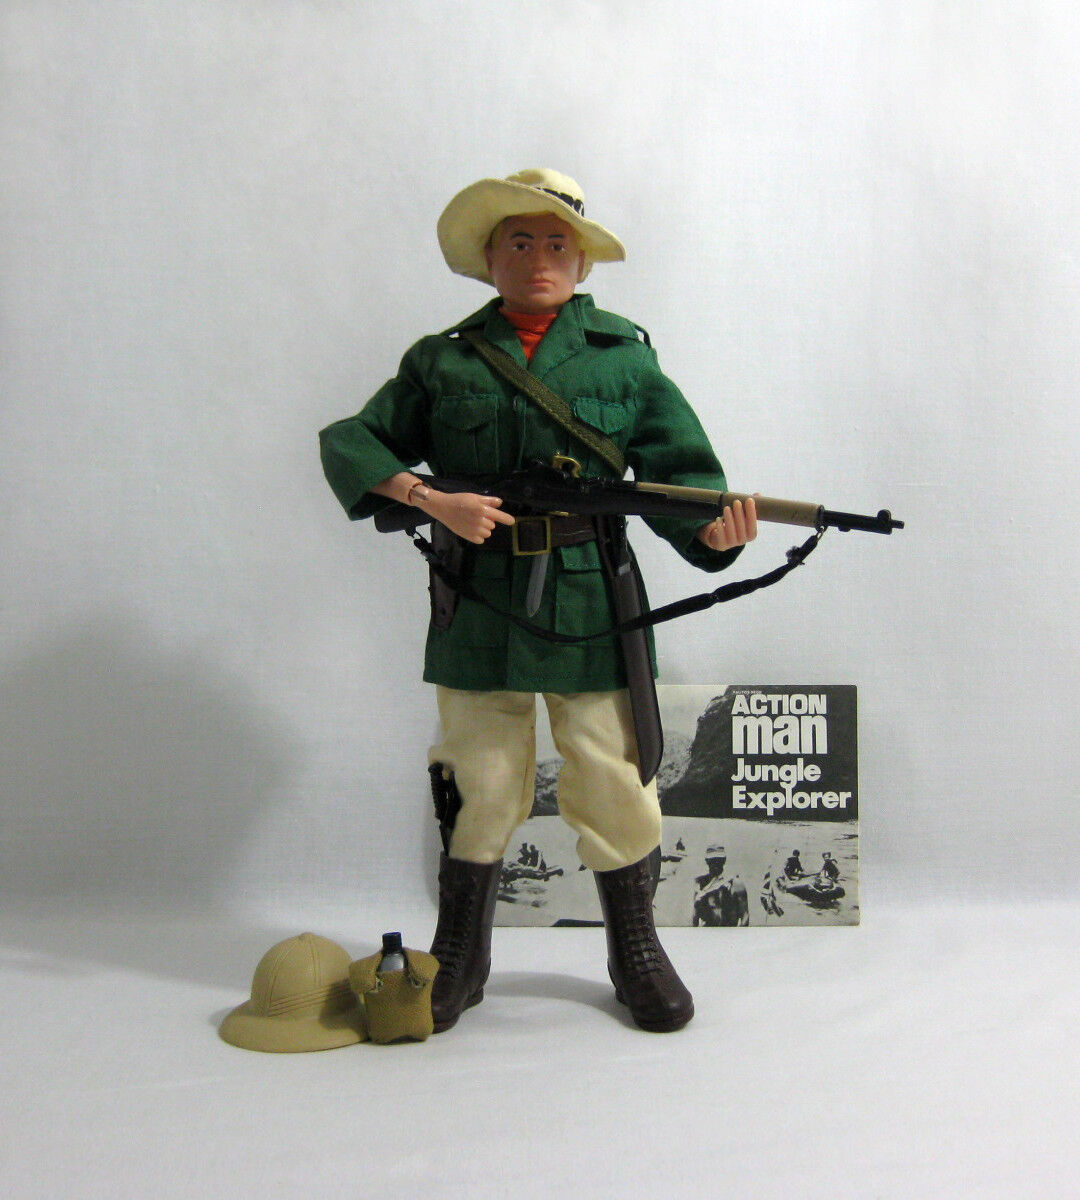 1969 Vintage Action Man ✧ Jungle Explorer ✧ Palitoy Hasbro G.I JOE